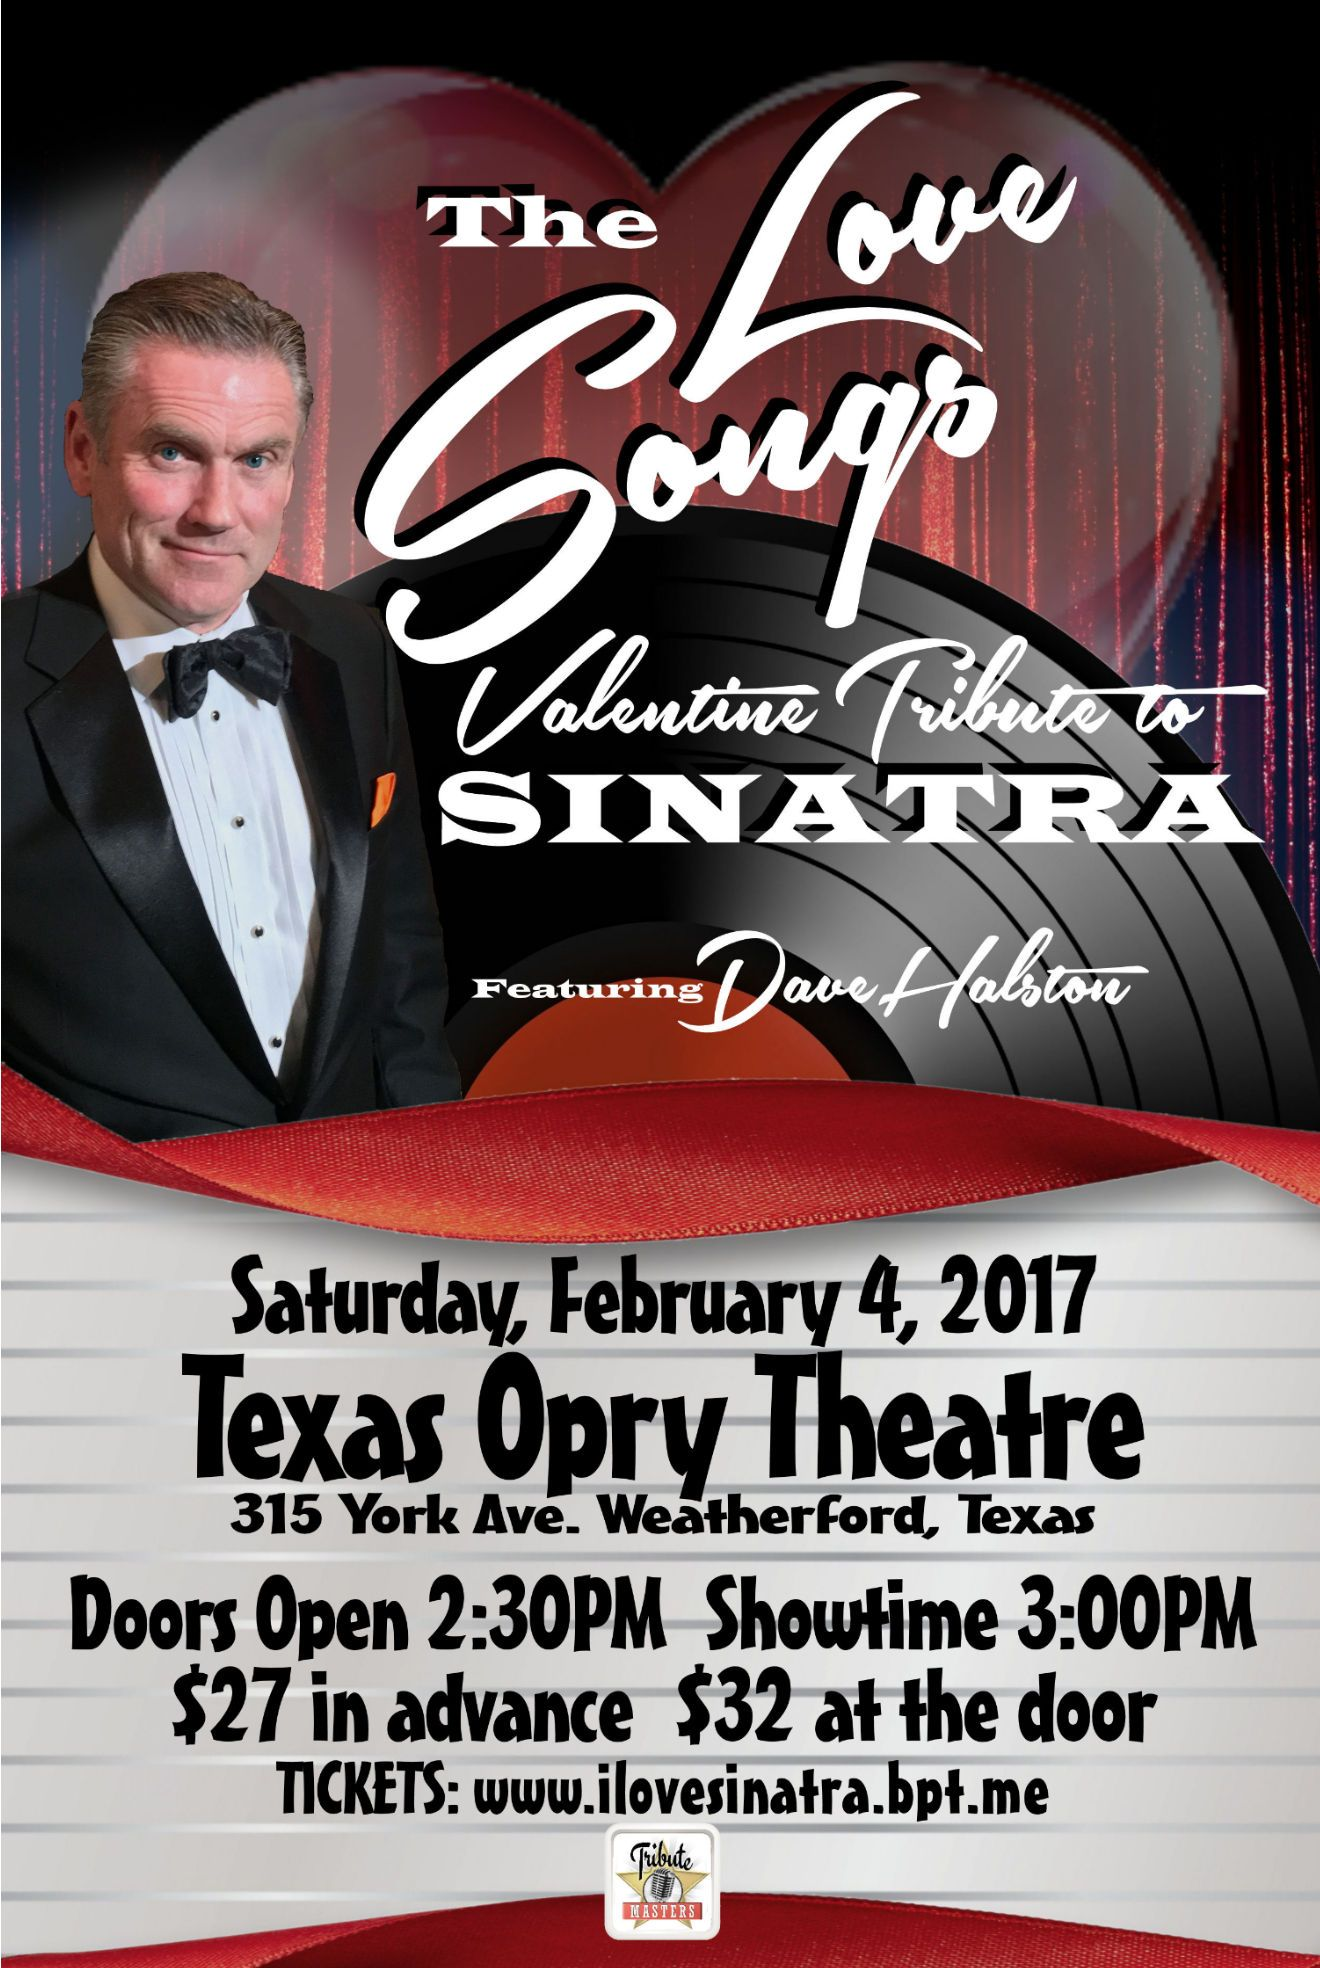 Texas Opry Theater - February 4th, 2017